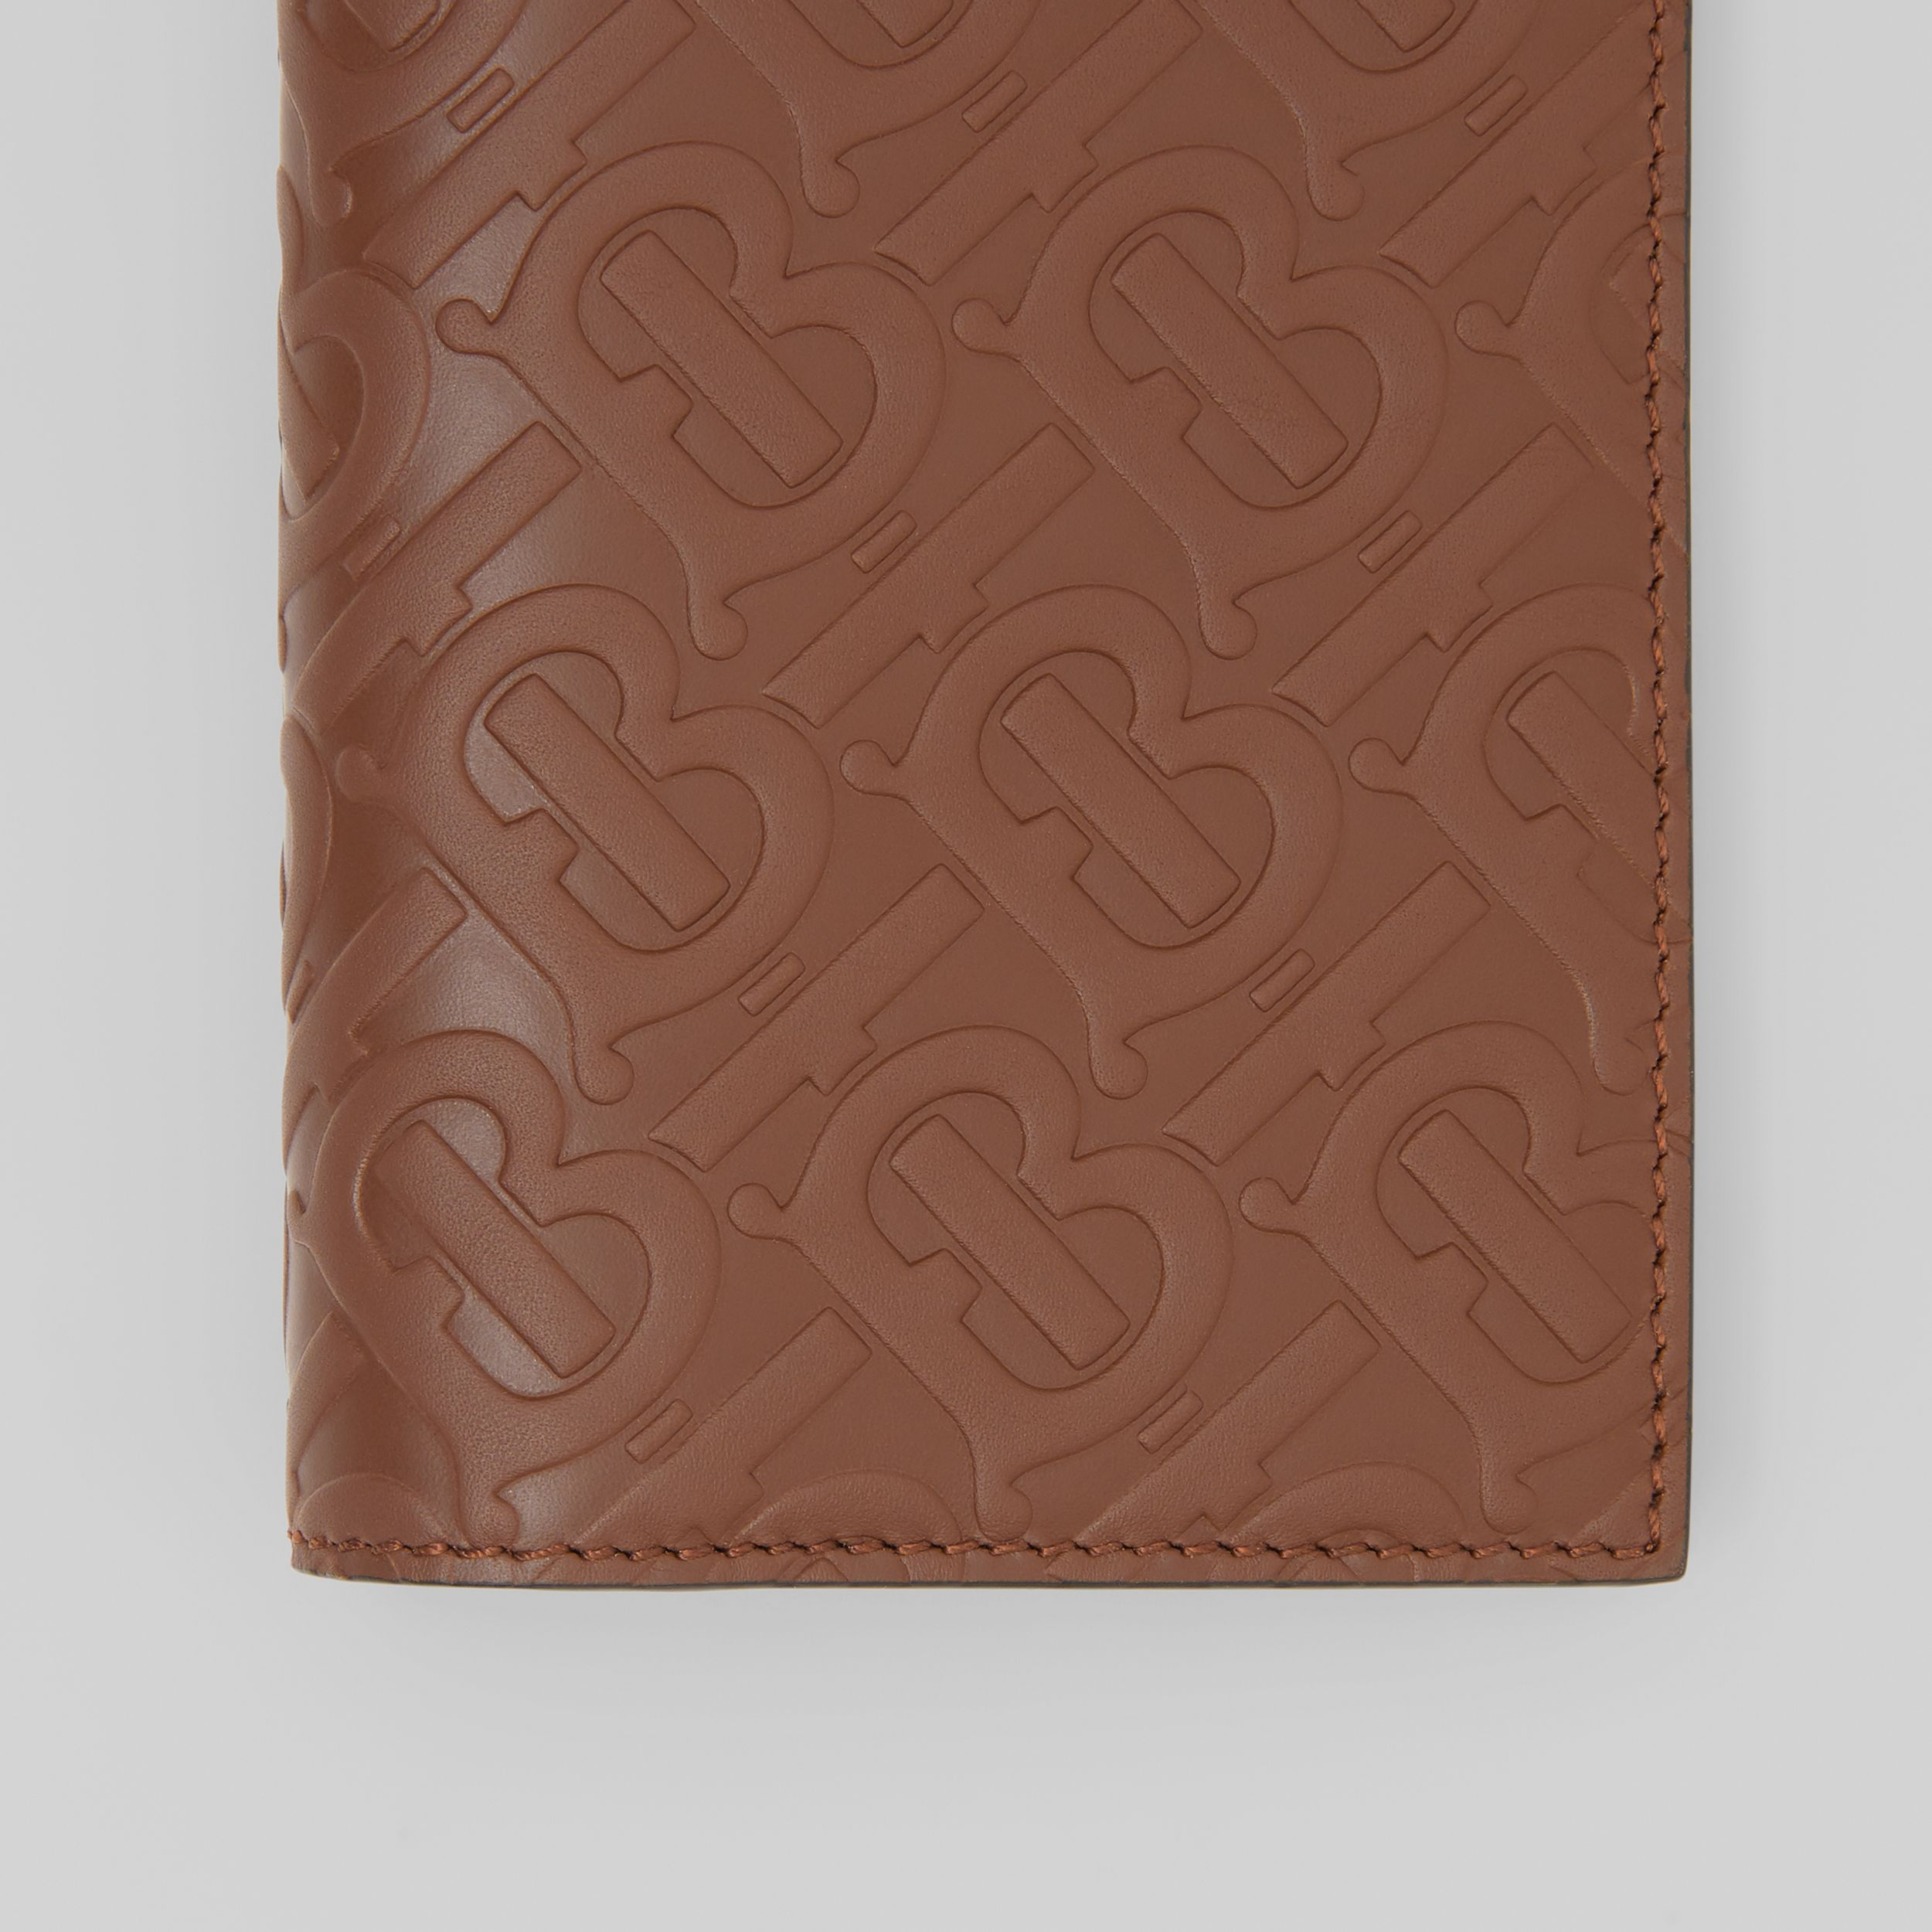 Monogram Leather Continental Wallet in Dark Tan | Burberry - 2